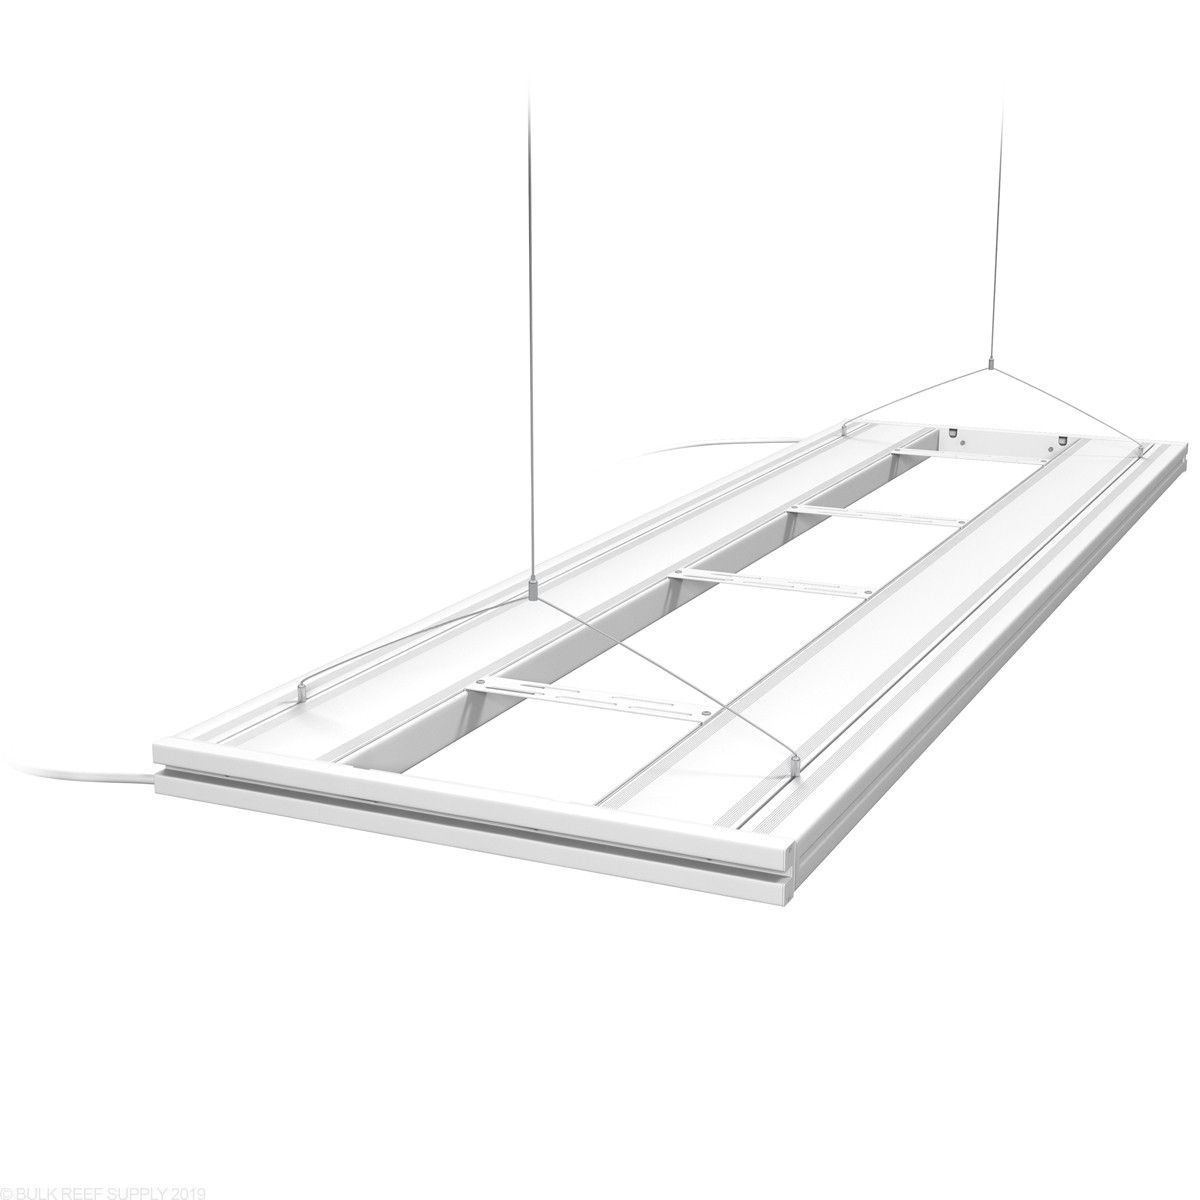 60 hybrid t5ho 4x24w fixture with led mounting system white aquatic life